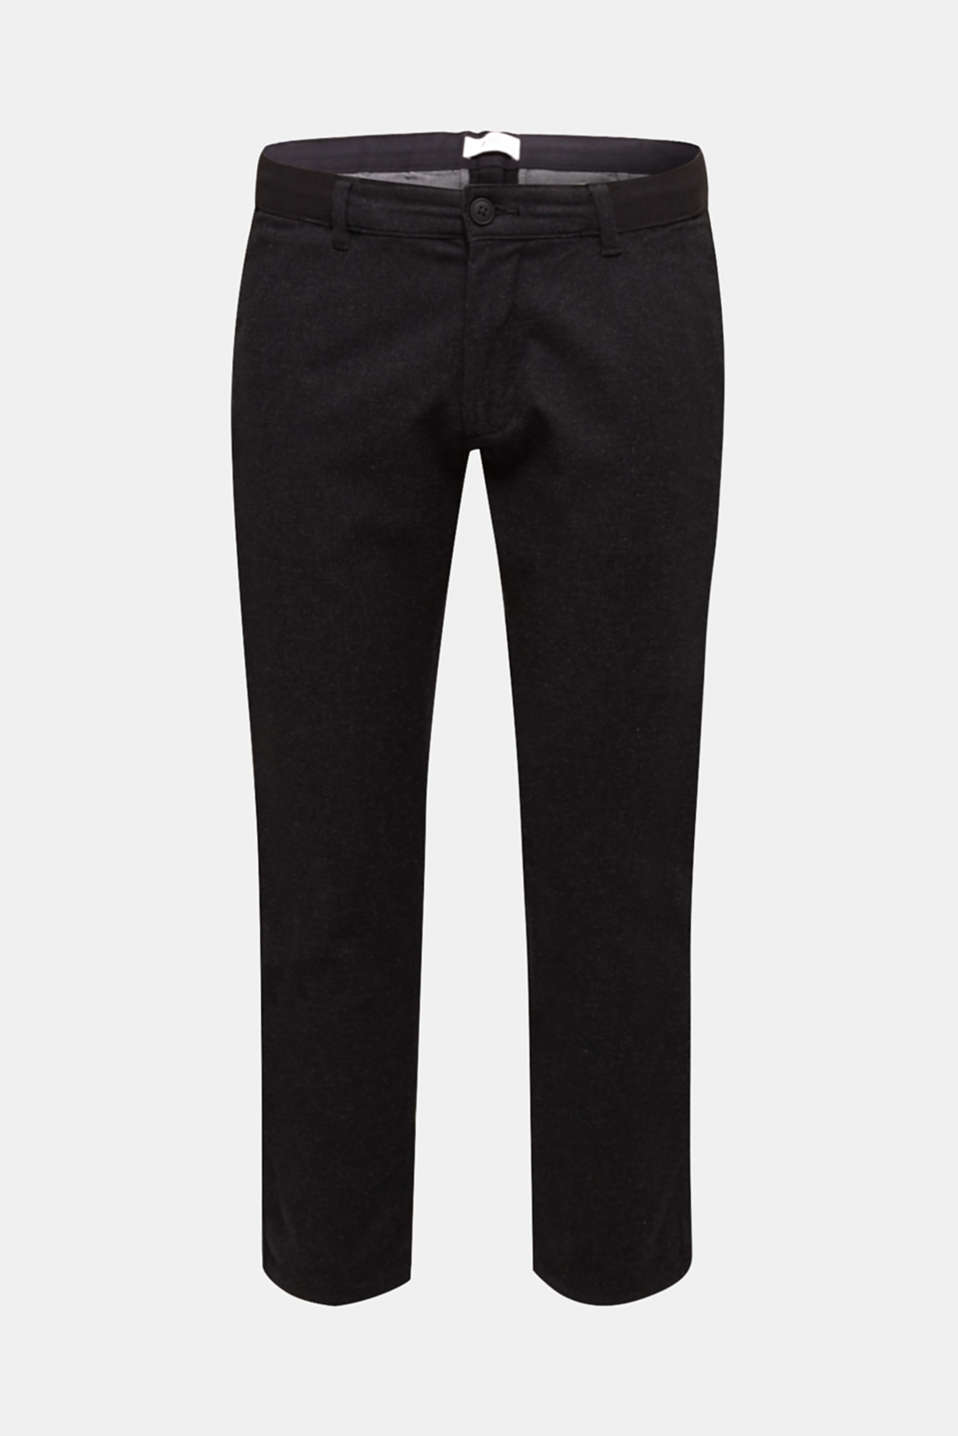 Pants woven Slim fit, ANTHRACITE, detail image number 5